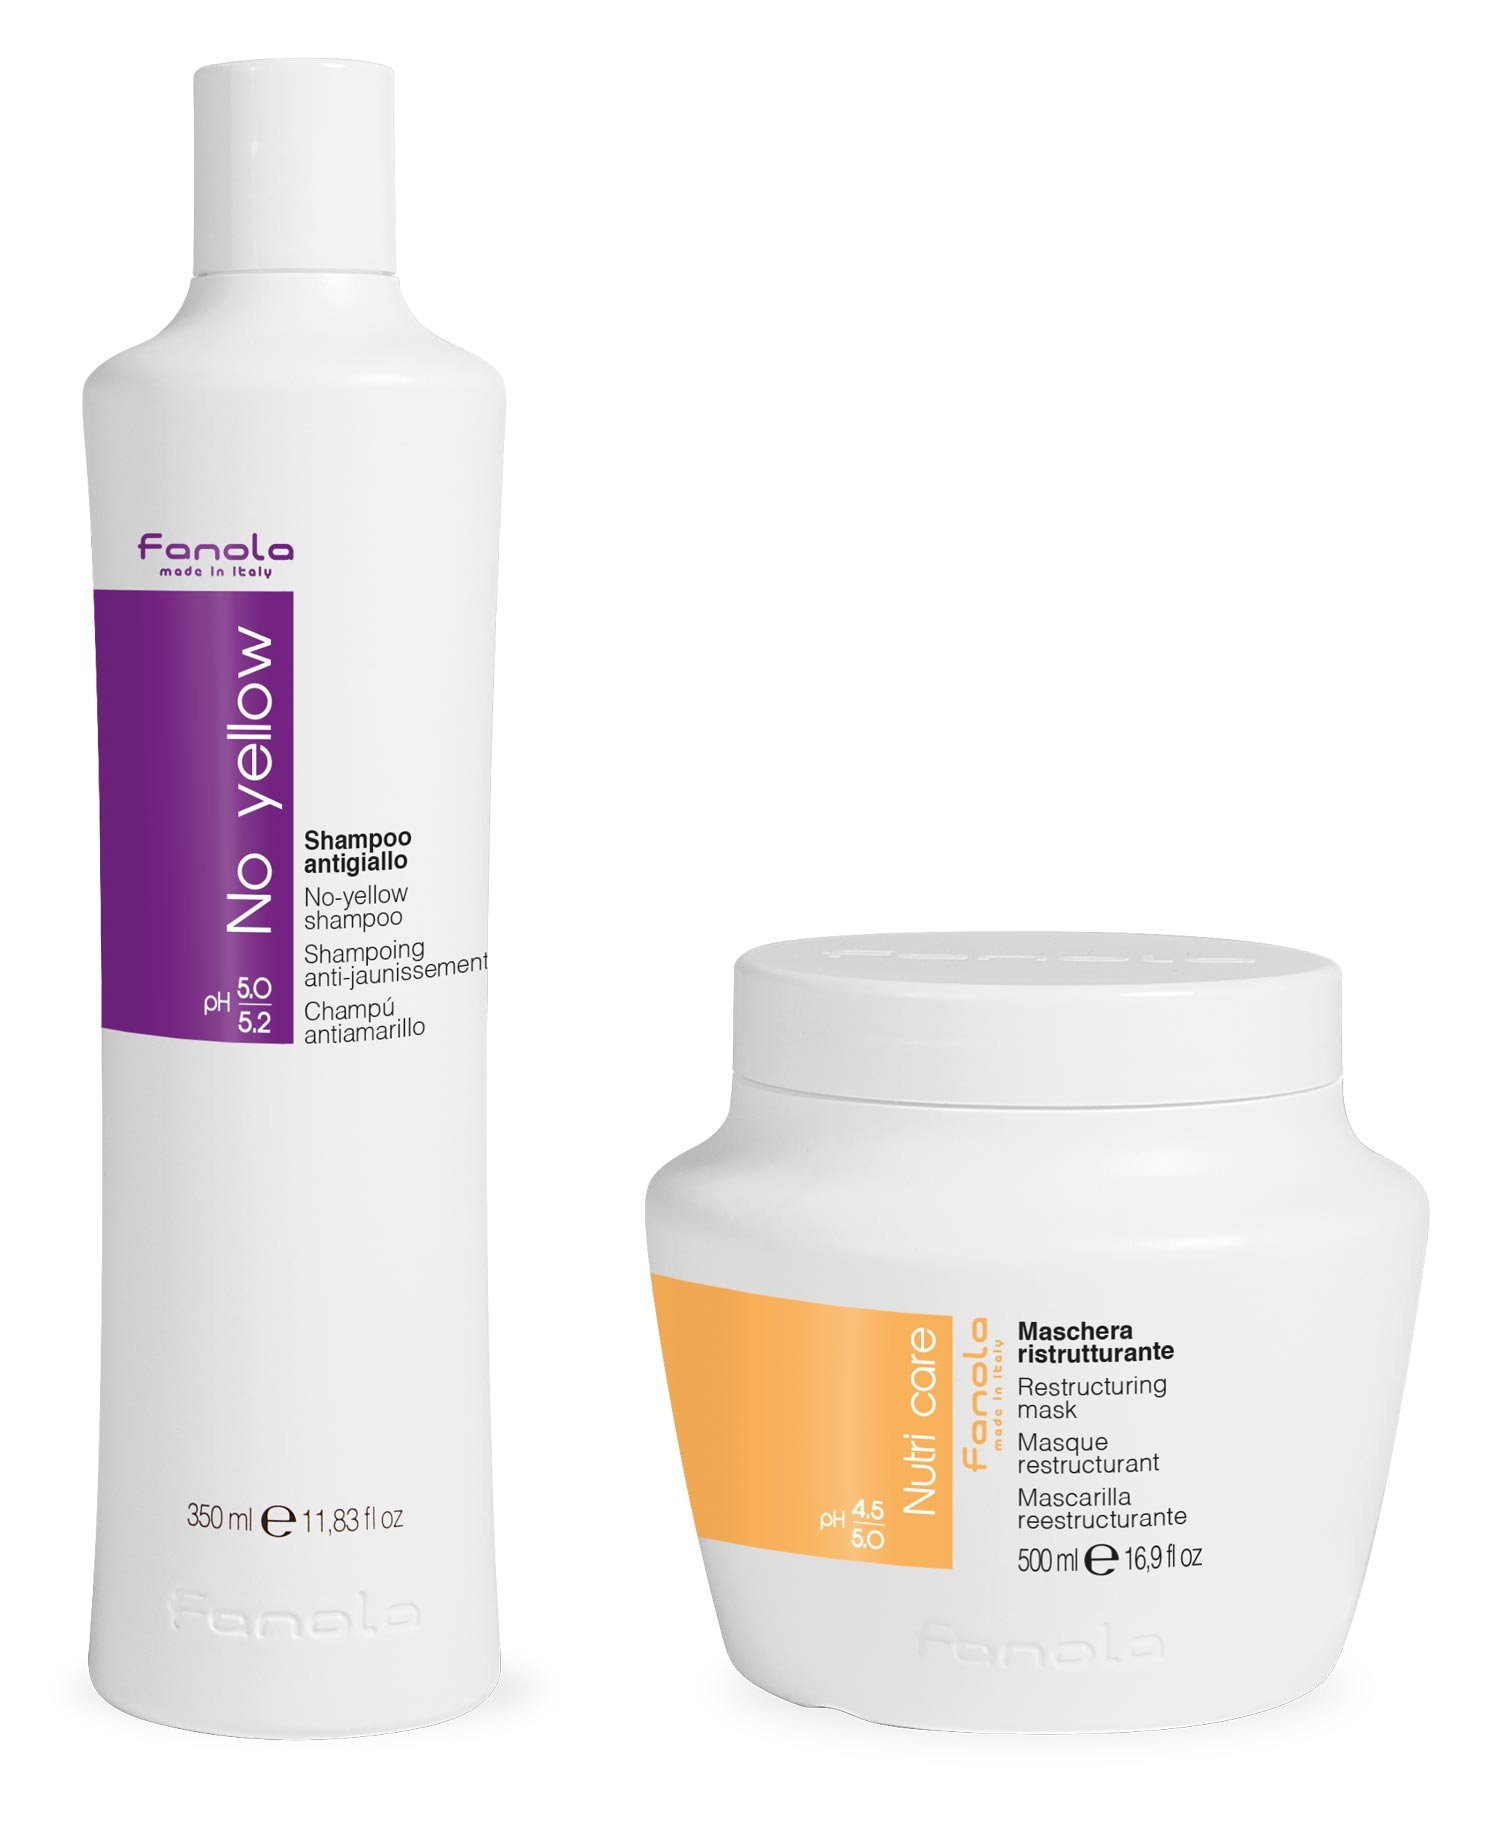 Fanola No Yellow Shampoo 350 ml & Fanola Nutri Care Restructuring Mask 500 ml